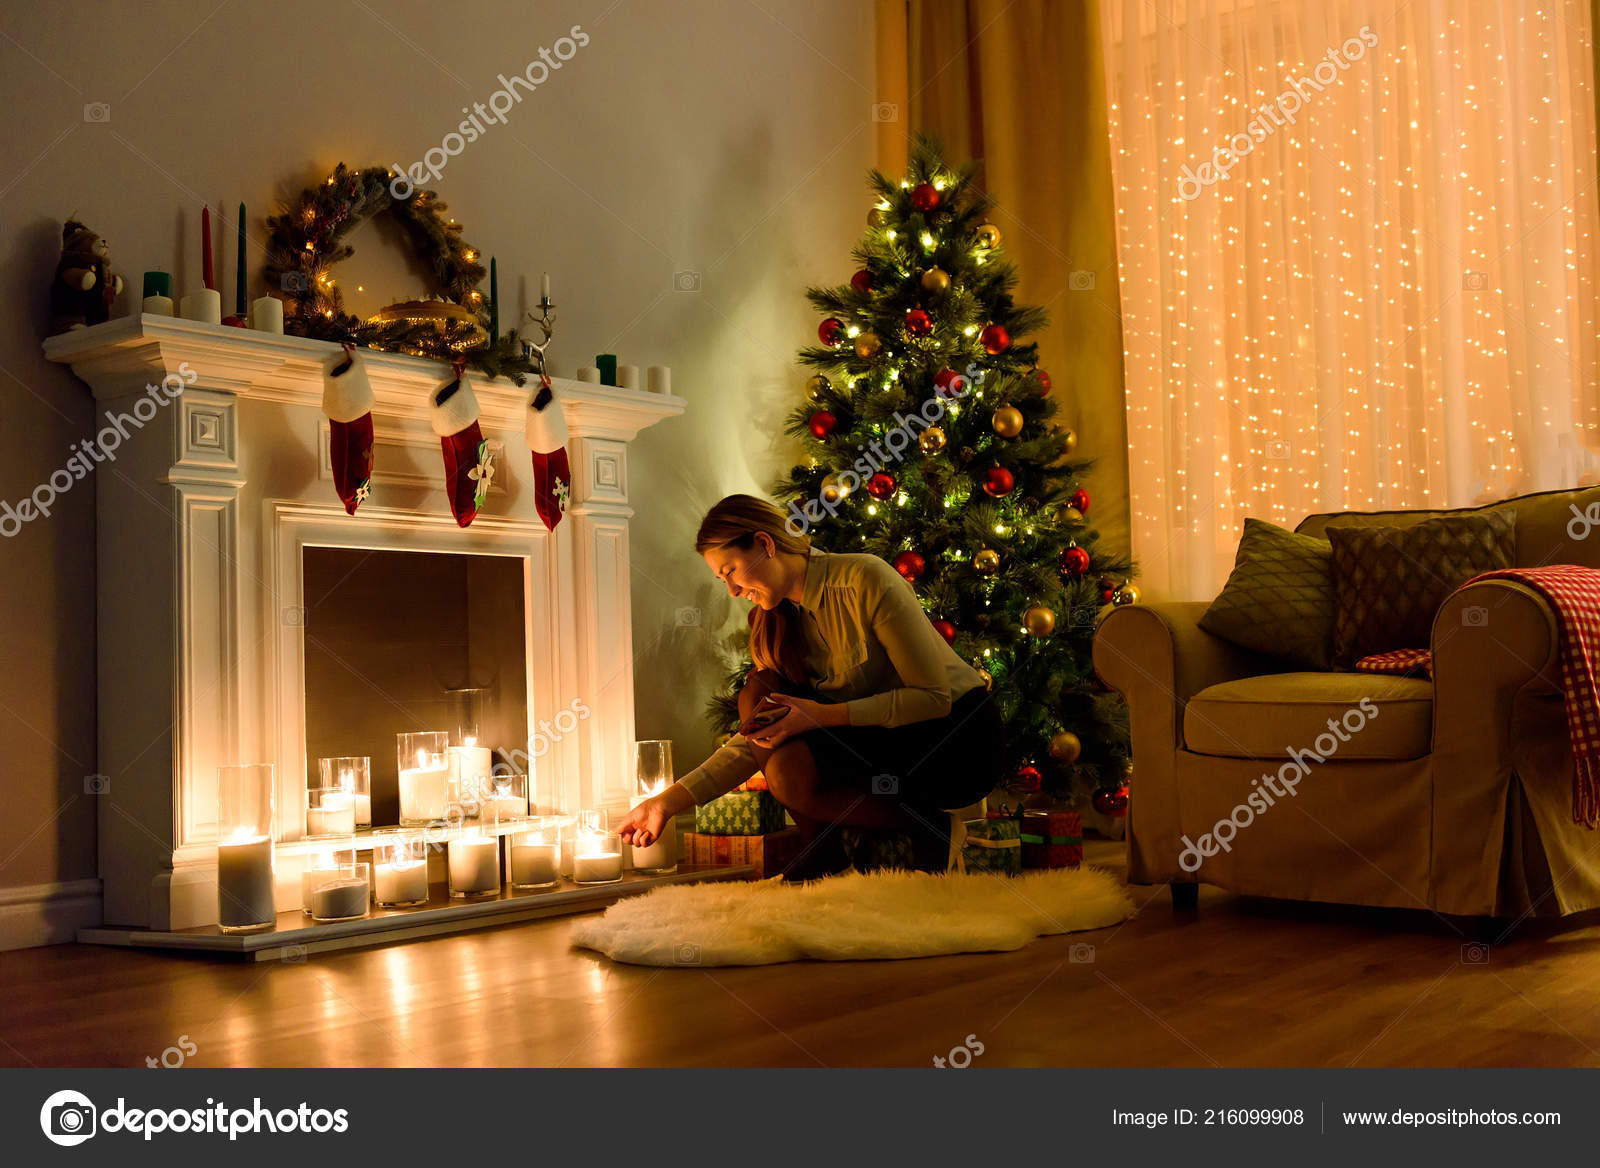 Christmas Decoration Indoors.Nice Woman Cosily Lighted Christmas Decorated Room Fixing